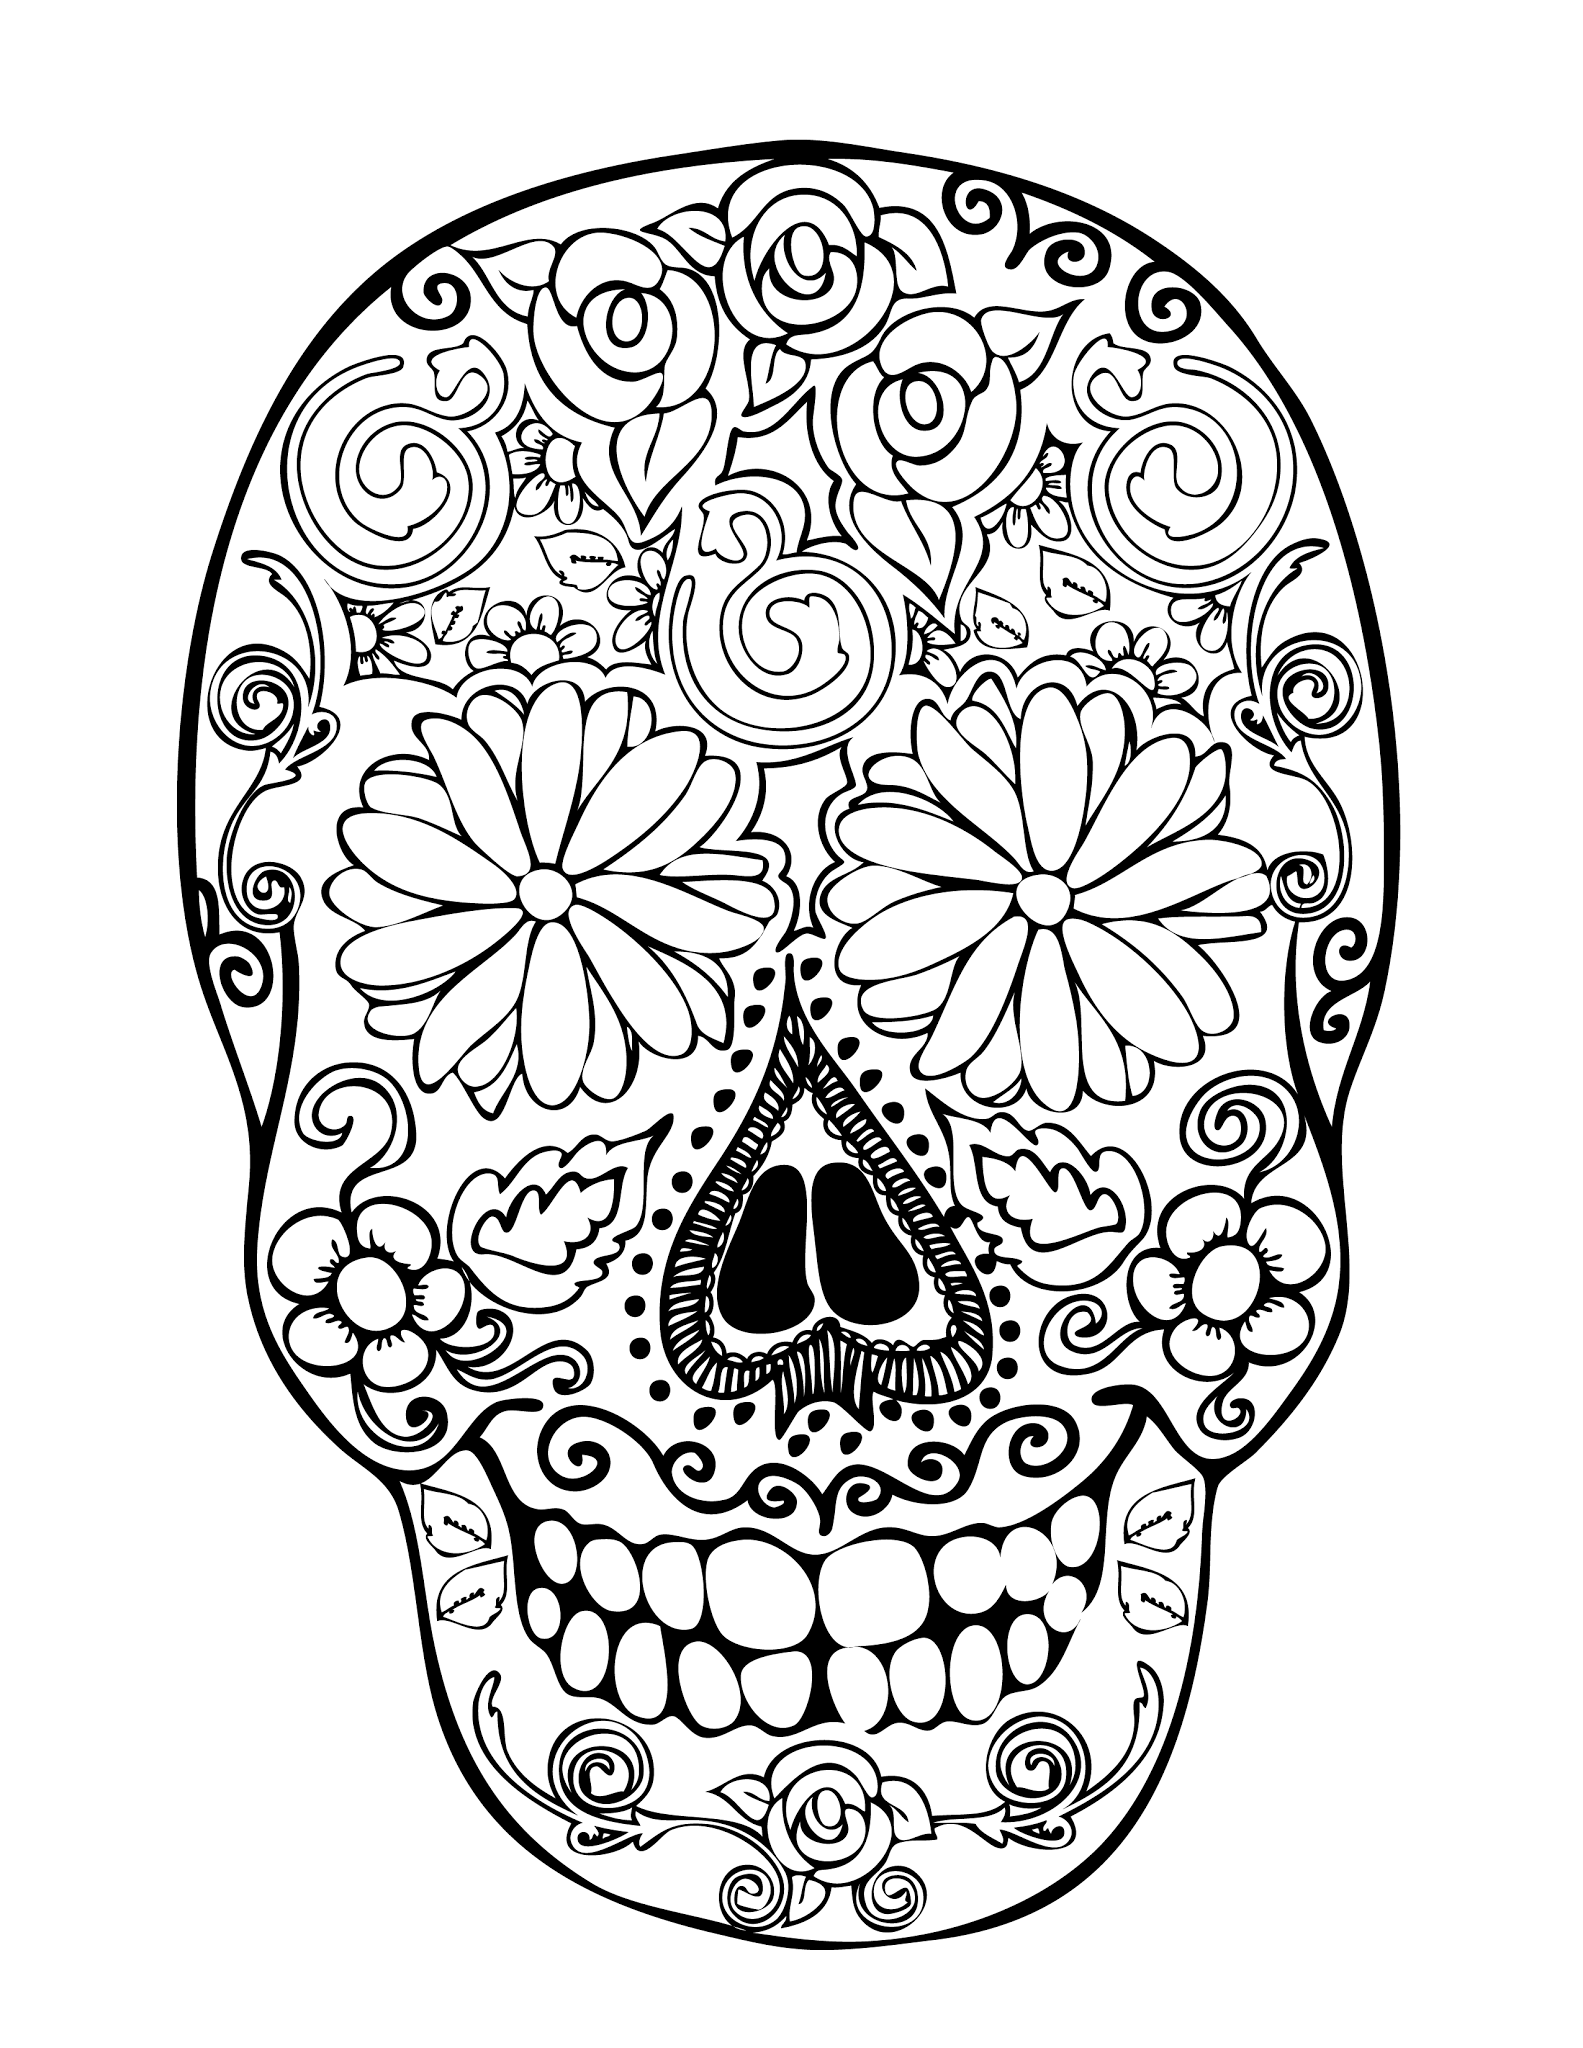 Geeky image regarding printable skulls